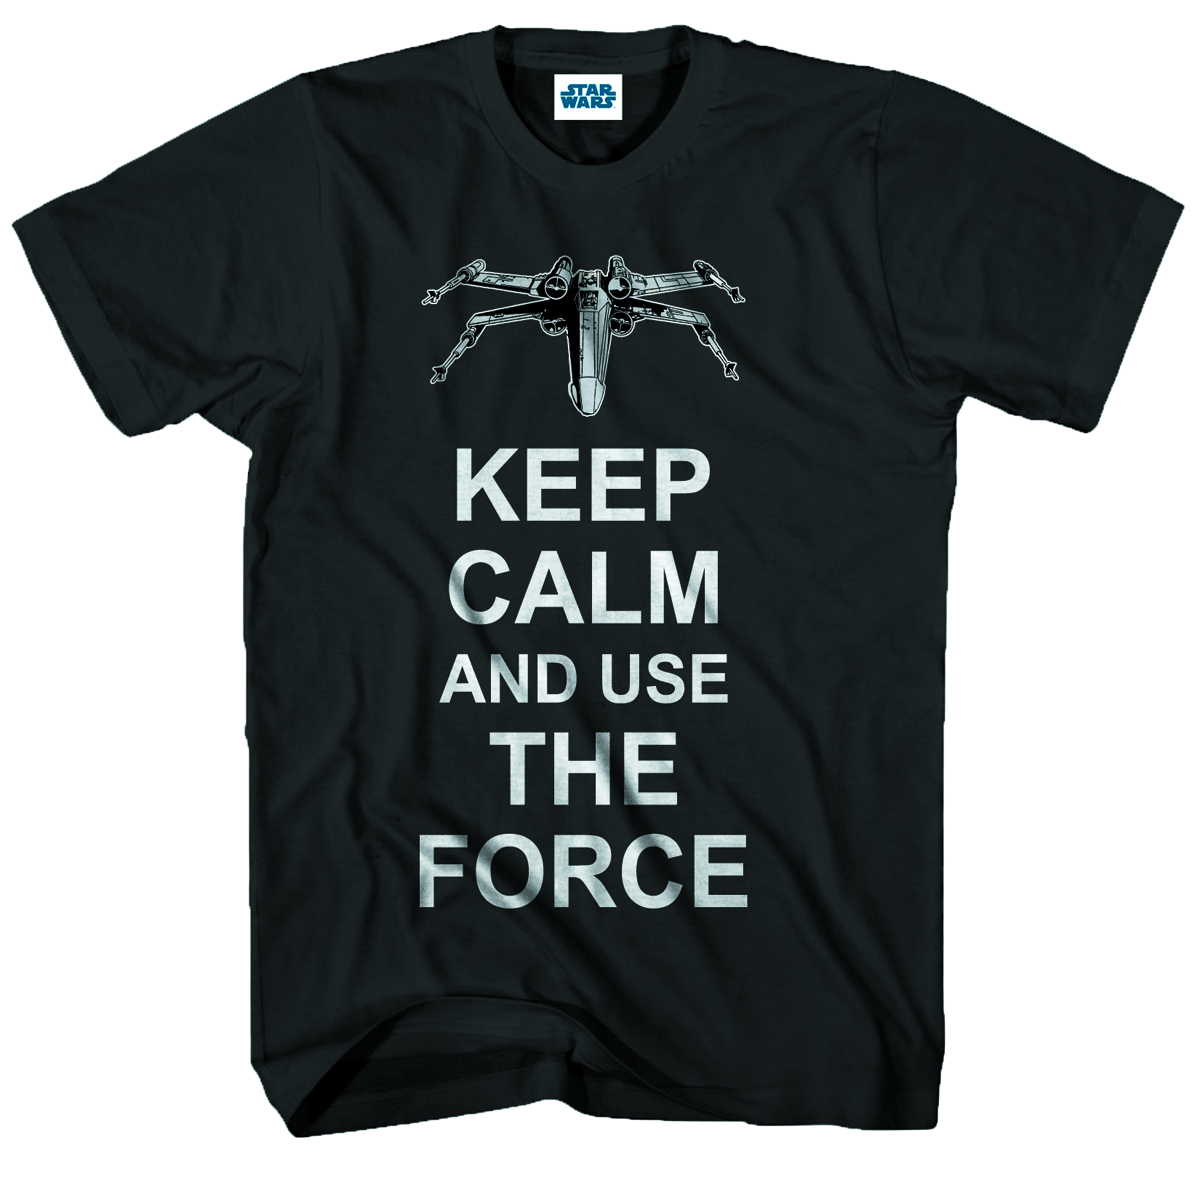 STAR WARS CALM FORCE BLK T/S LG